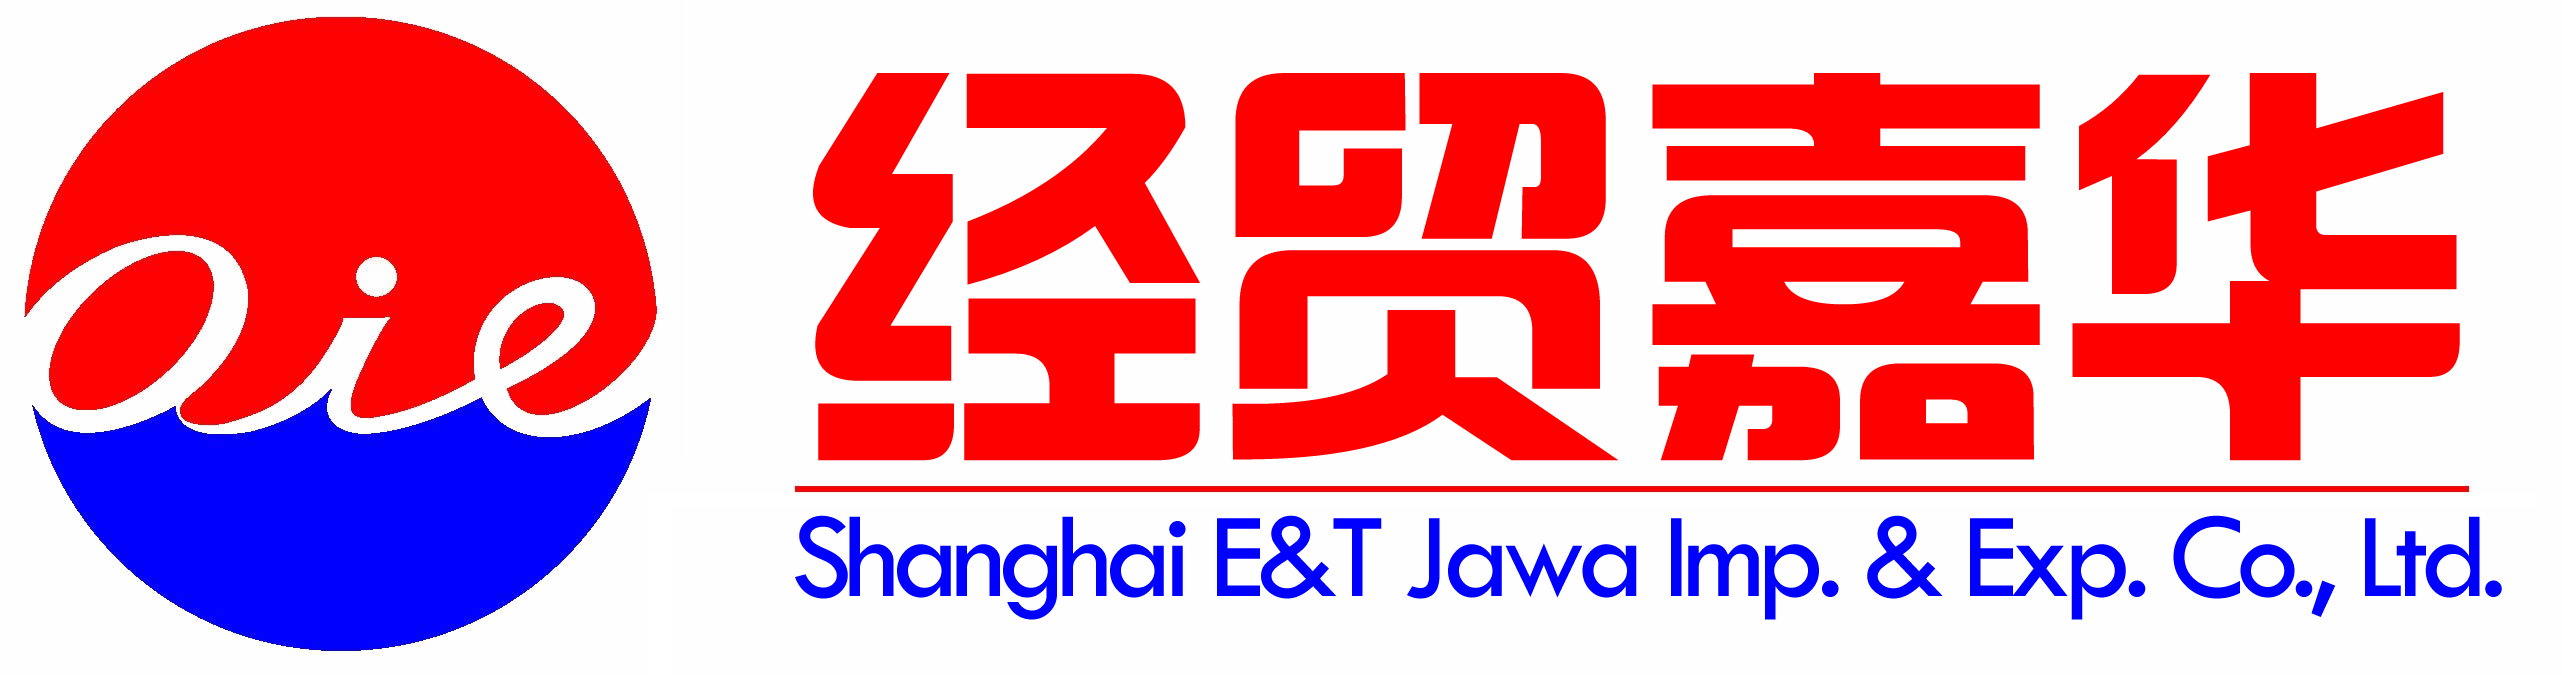 SHANGHAI E&T JAWA IMPORT AND EXPORT CO., LTD.